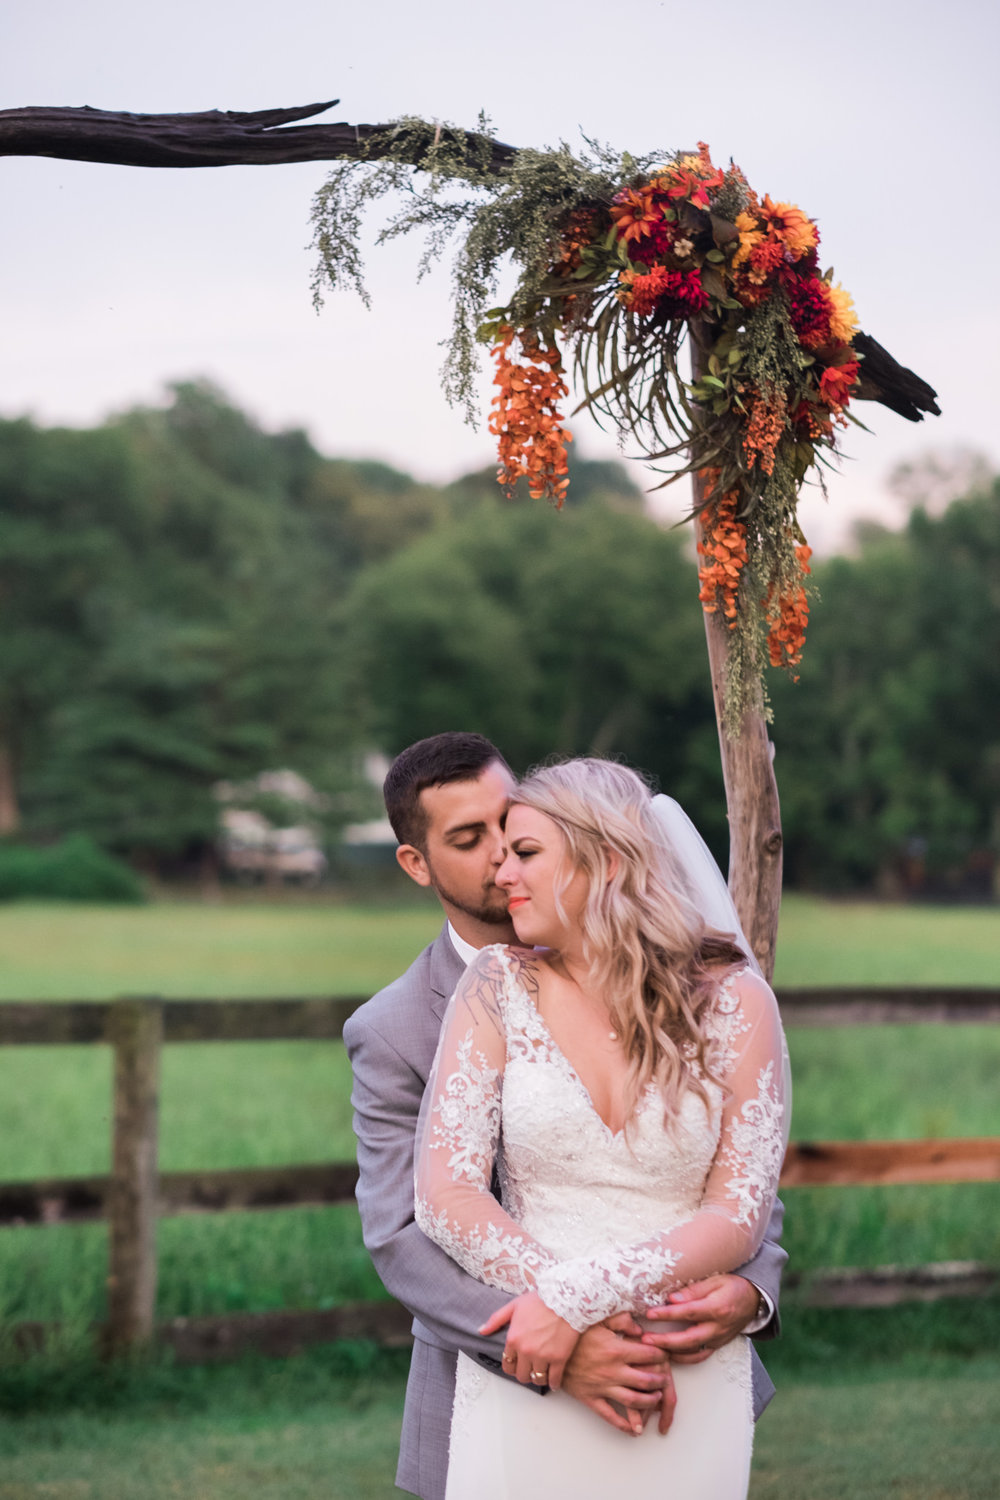 Brynn&Blake_Wedding_Blog_0043.jpg